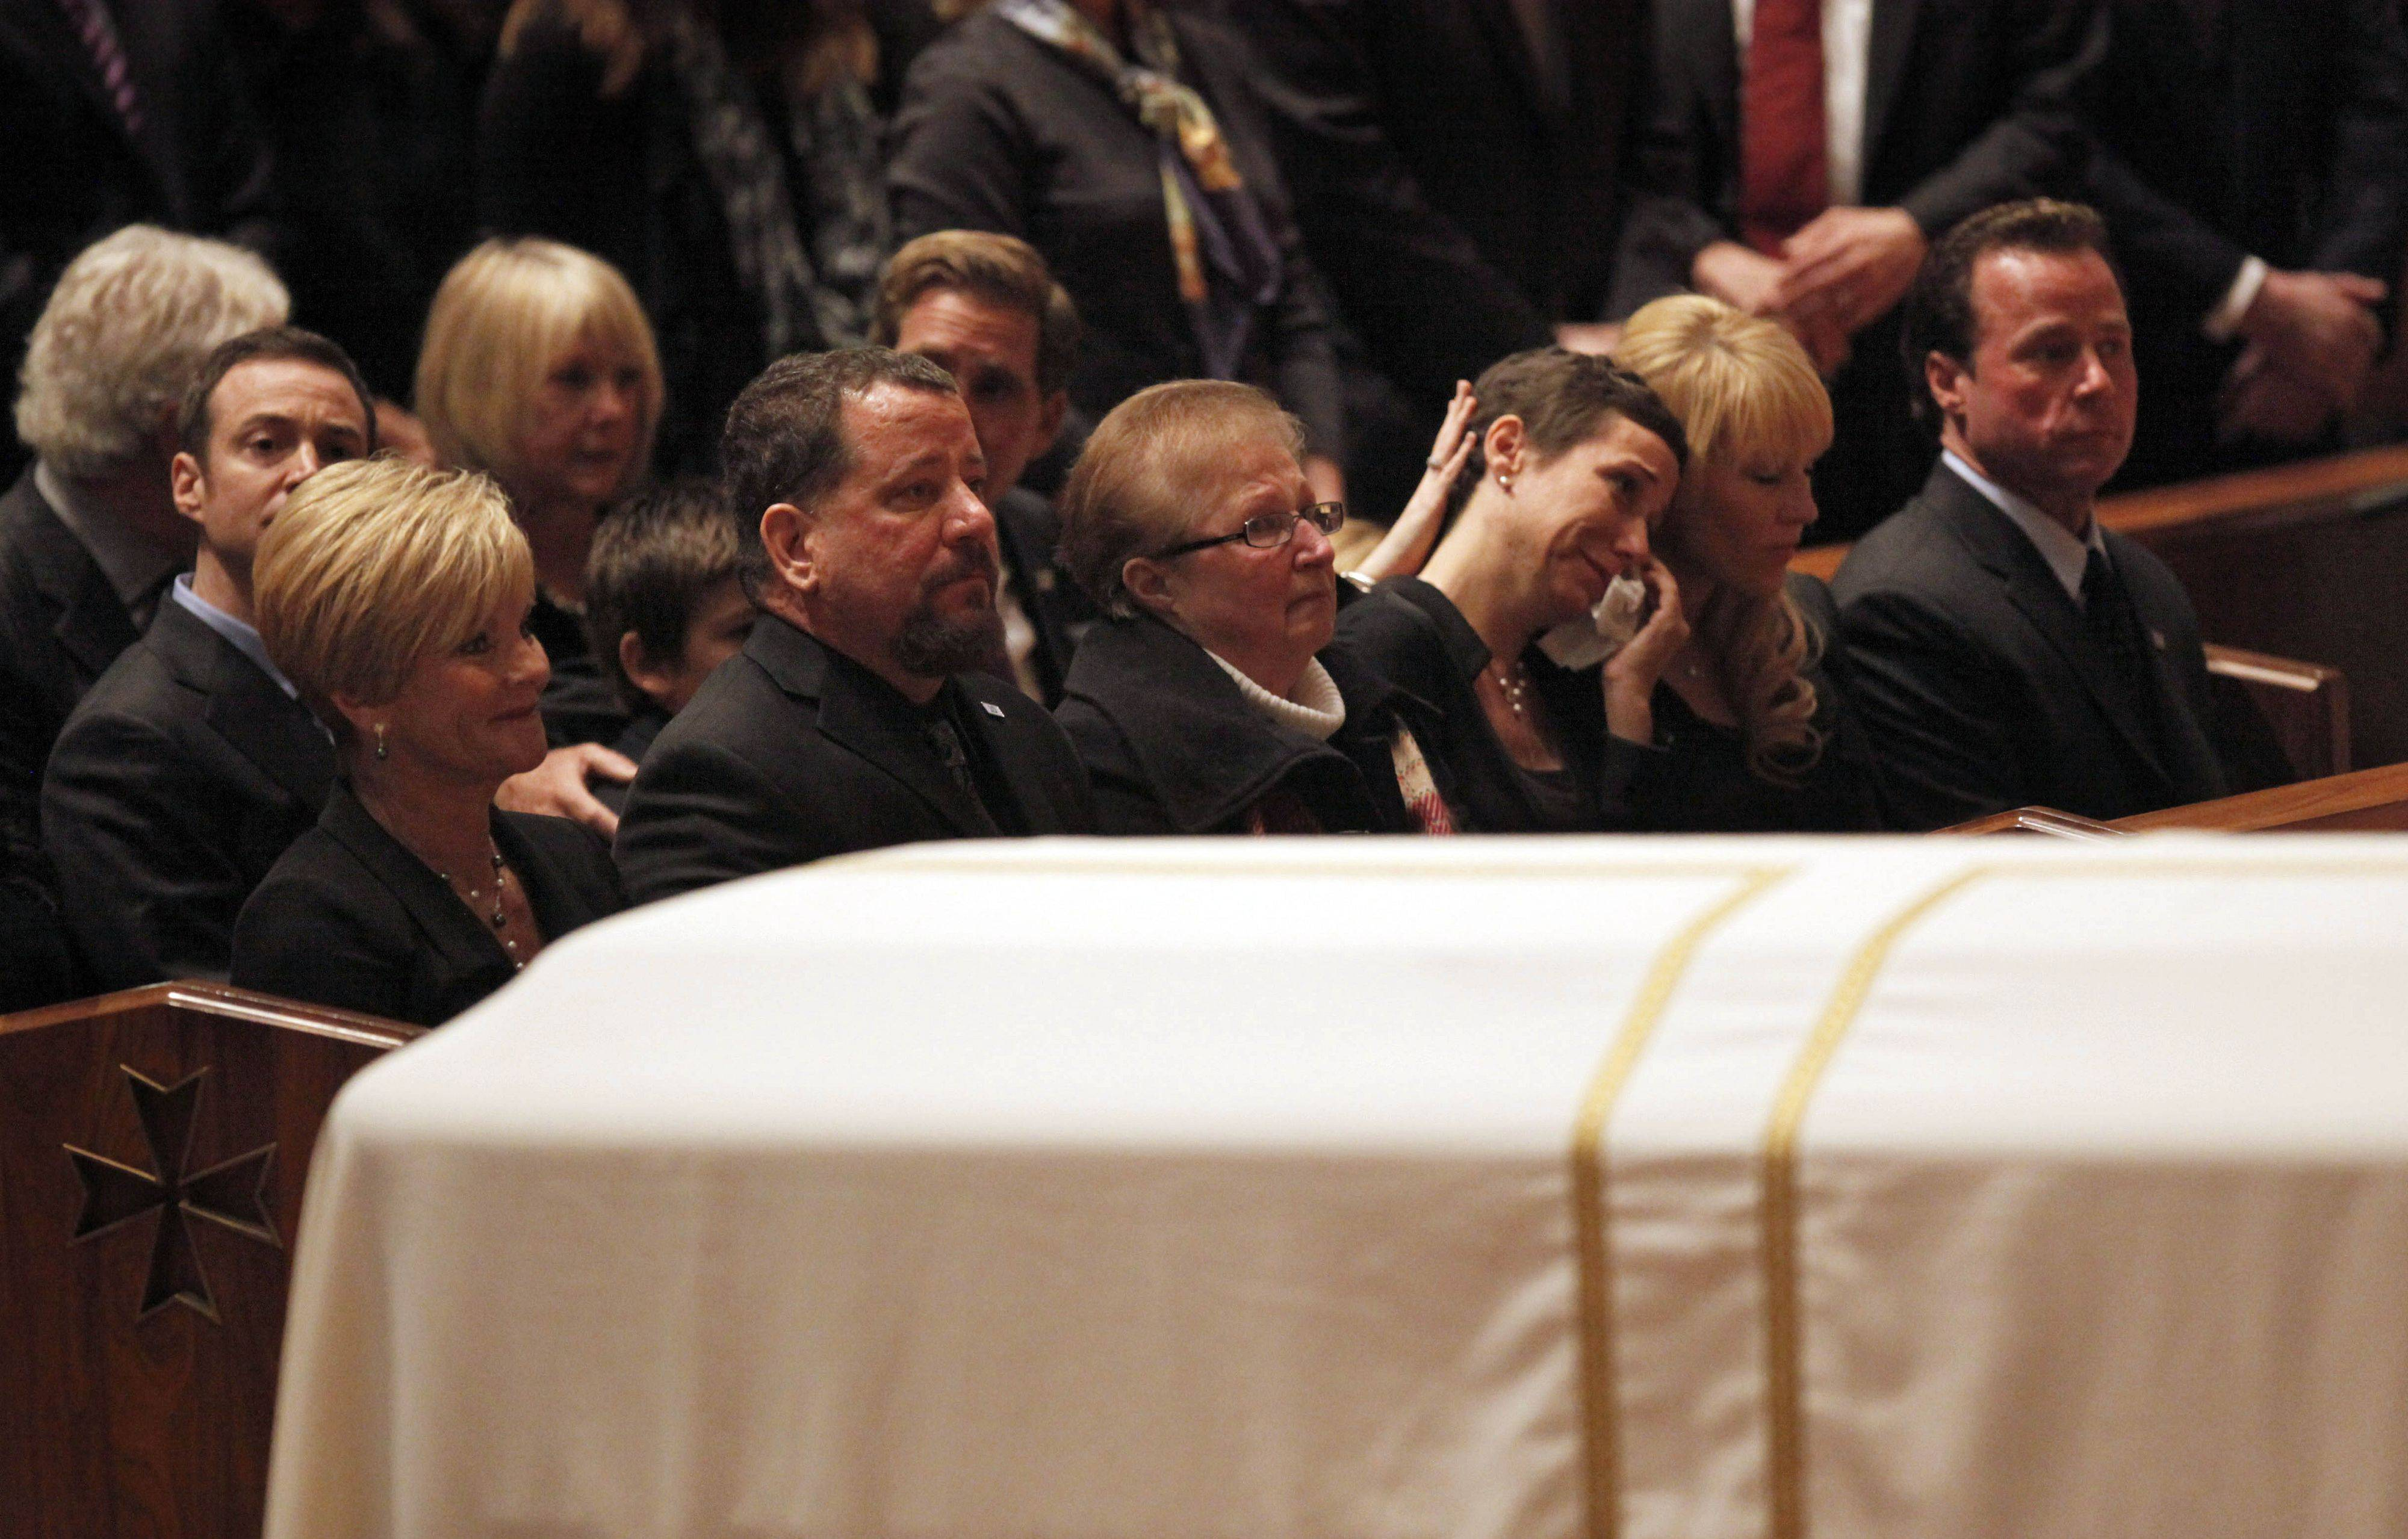 Family members react during the funeral Mass for Chicago Cubs great and longtime radio announcer Ron Santo at Holy Name Cathedral, Friday, Dec. 10, 2010 in Chicago. The nine-time all-star died Dec. 2 in an Arizona hospital from complications of bladder cancer. He was 70.